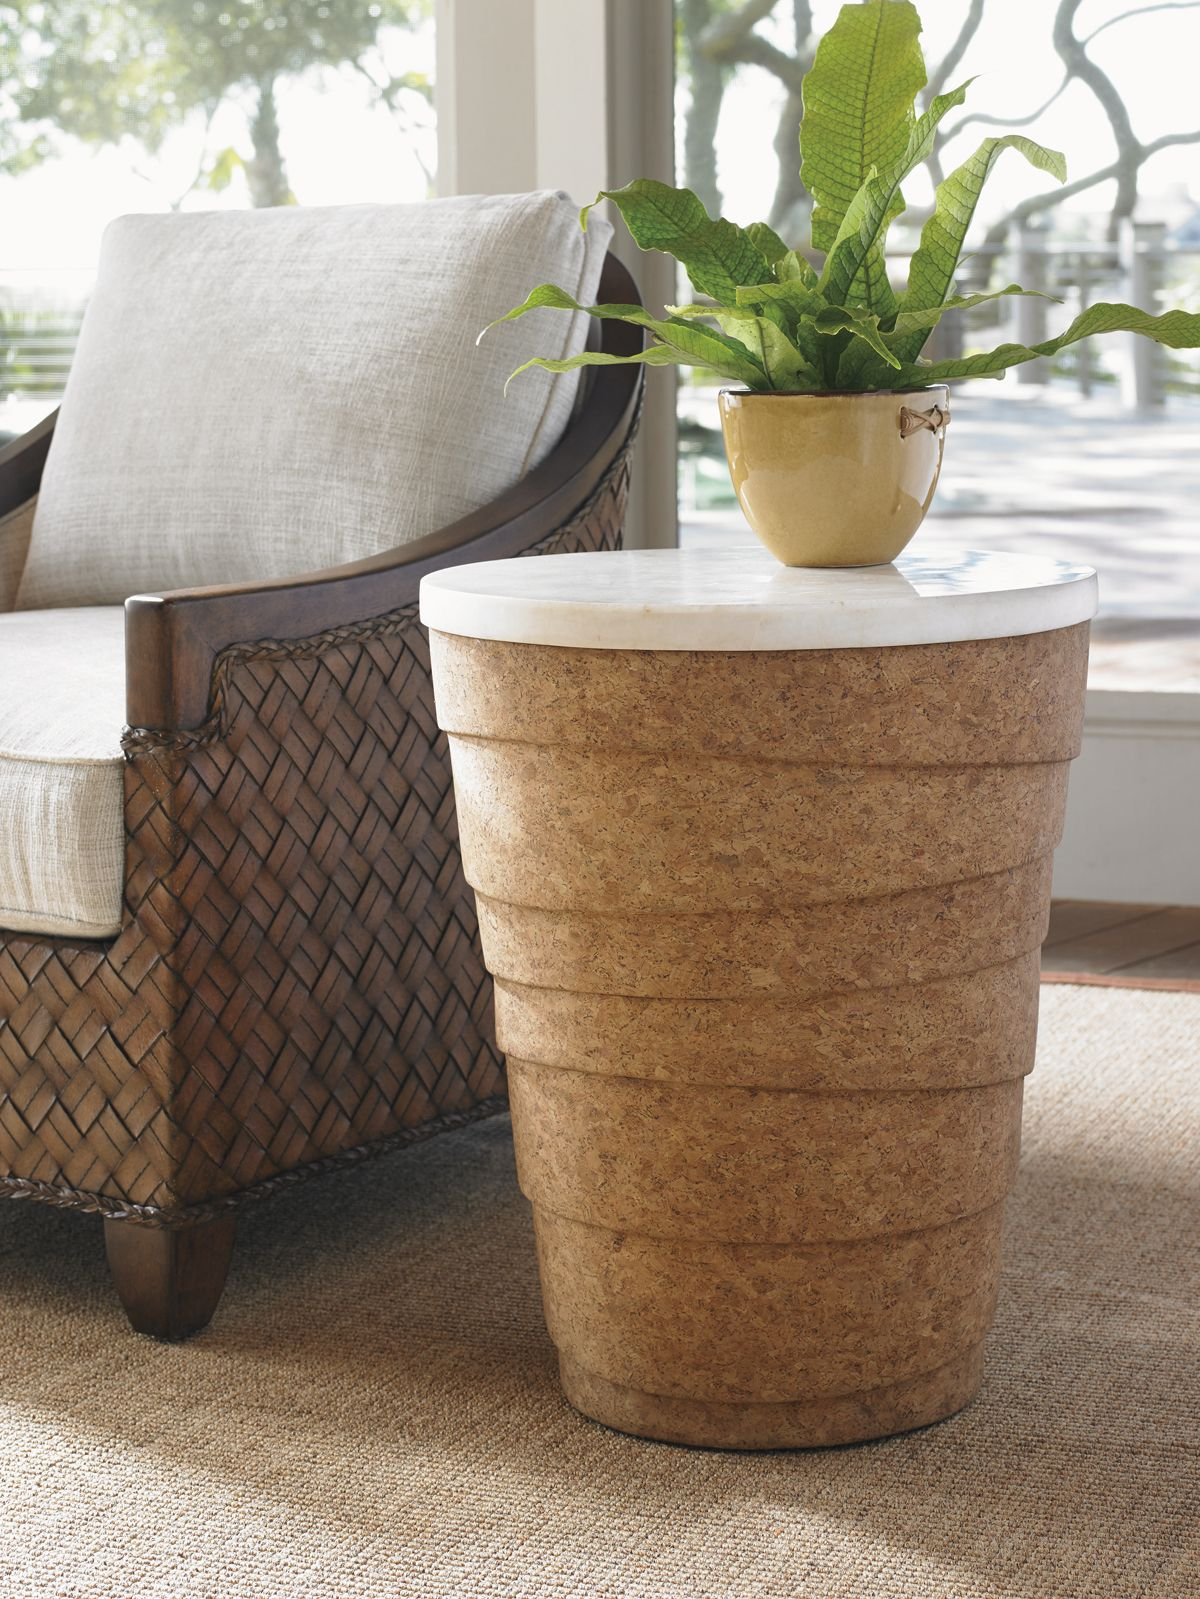 island fusion kendari round accent table lexington home brands wood small entryway cabinet living room lamp shades patio loveseat cover sliding door ideas ethan allen furniture